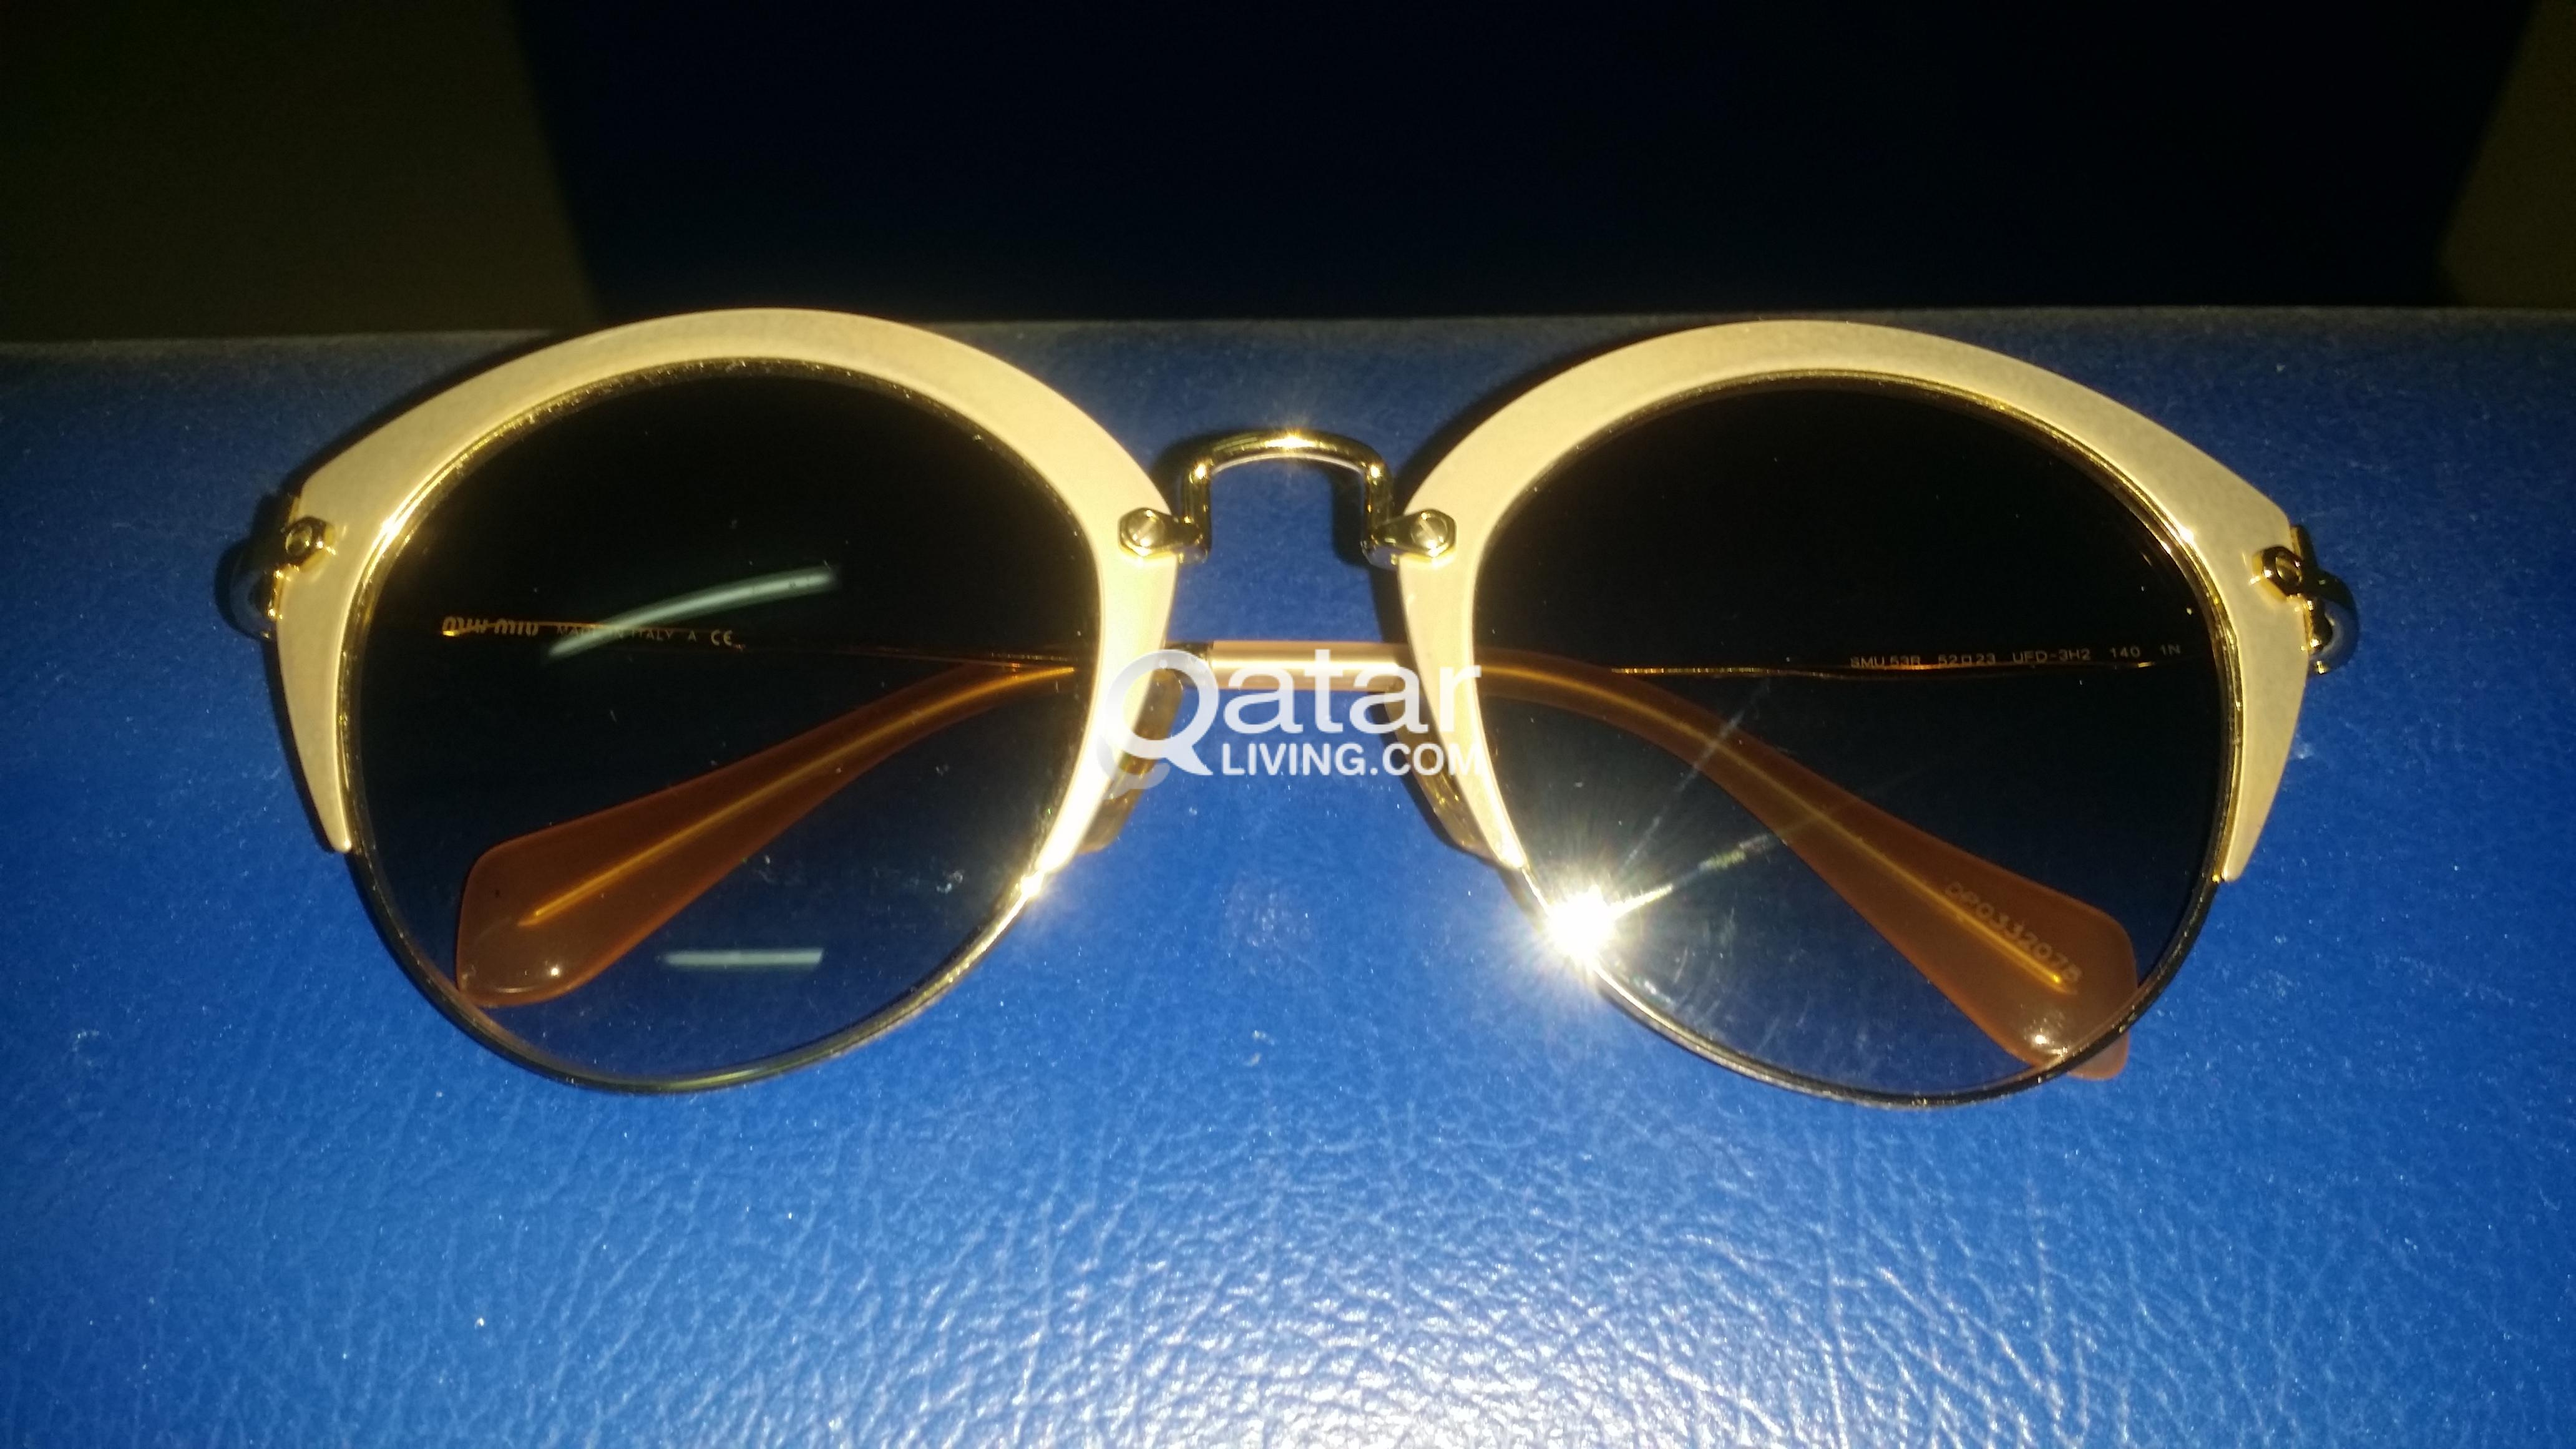 04f18432b7f title  title  title  title  title  title. Information. Selling rarely used  Genuine glasses from MIU ...